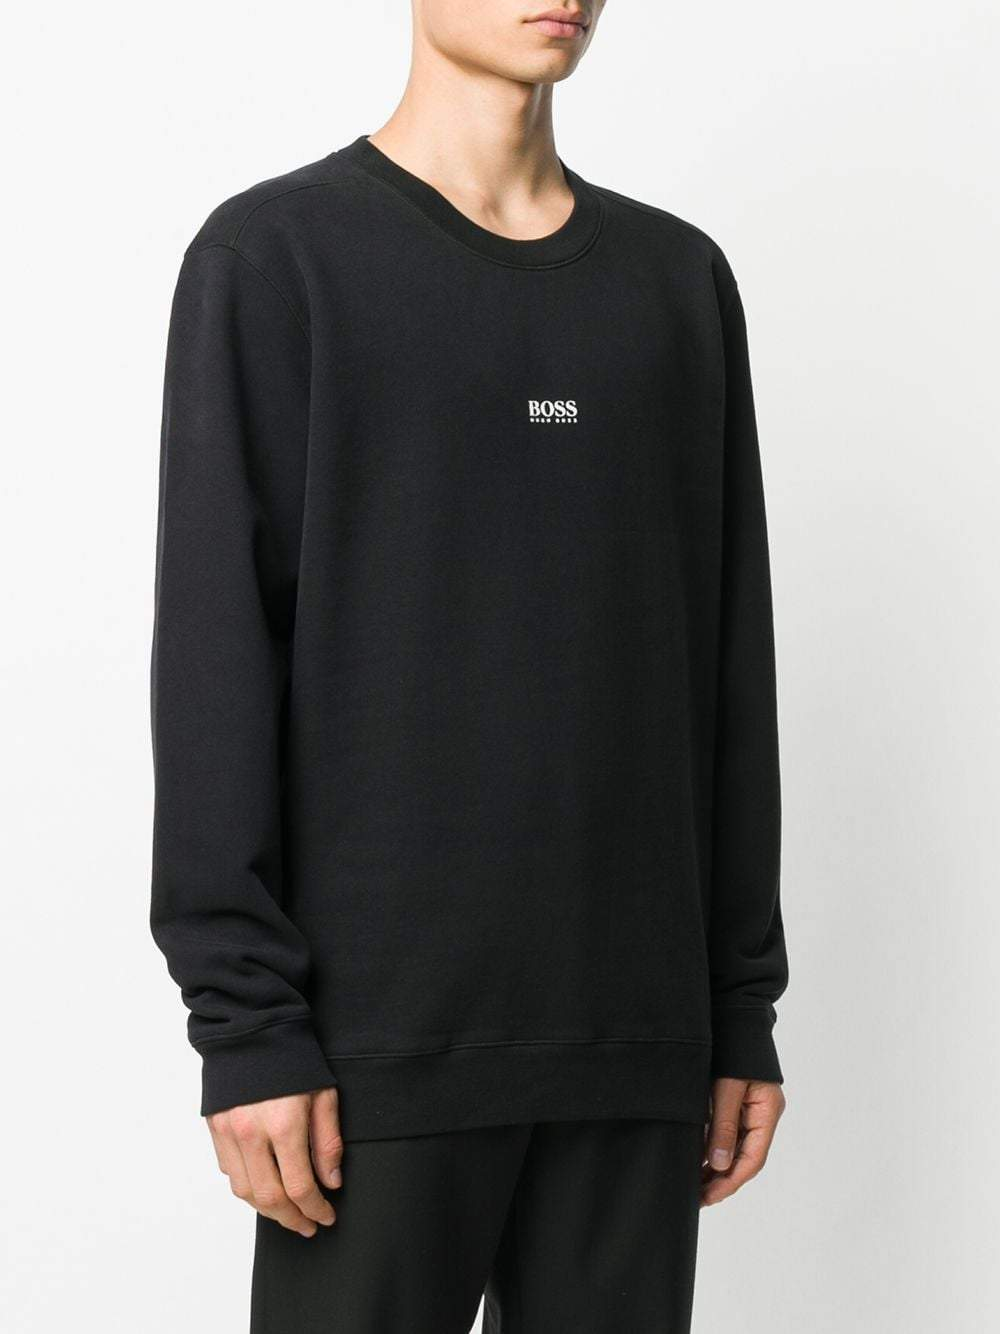 BOSS Small Logo Sweatshirt Black